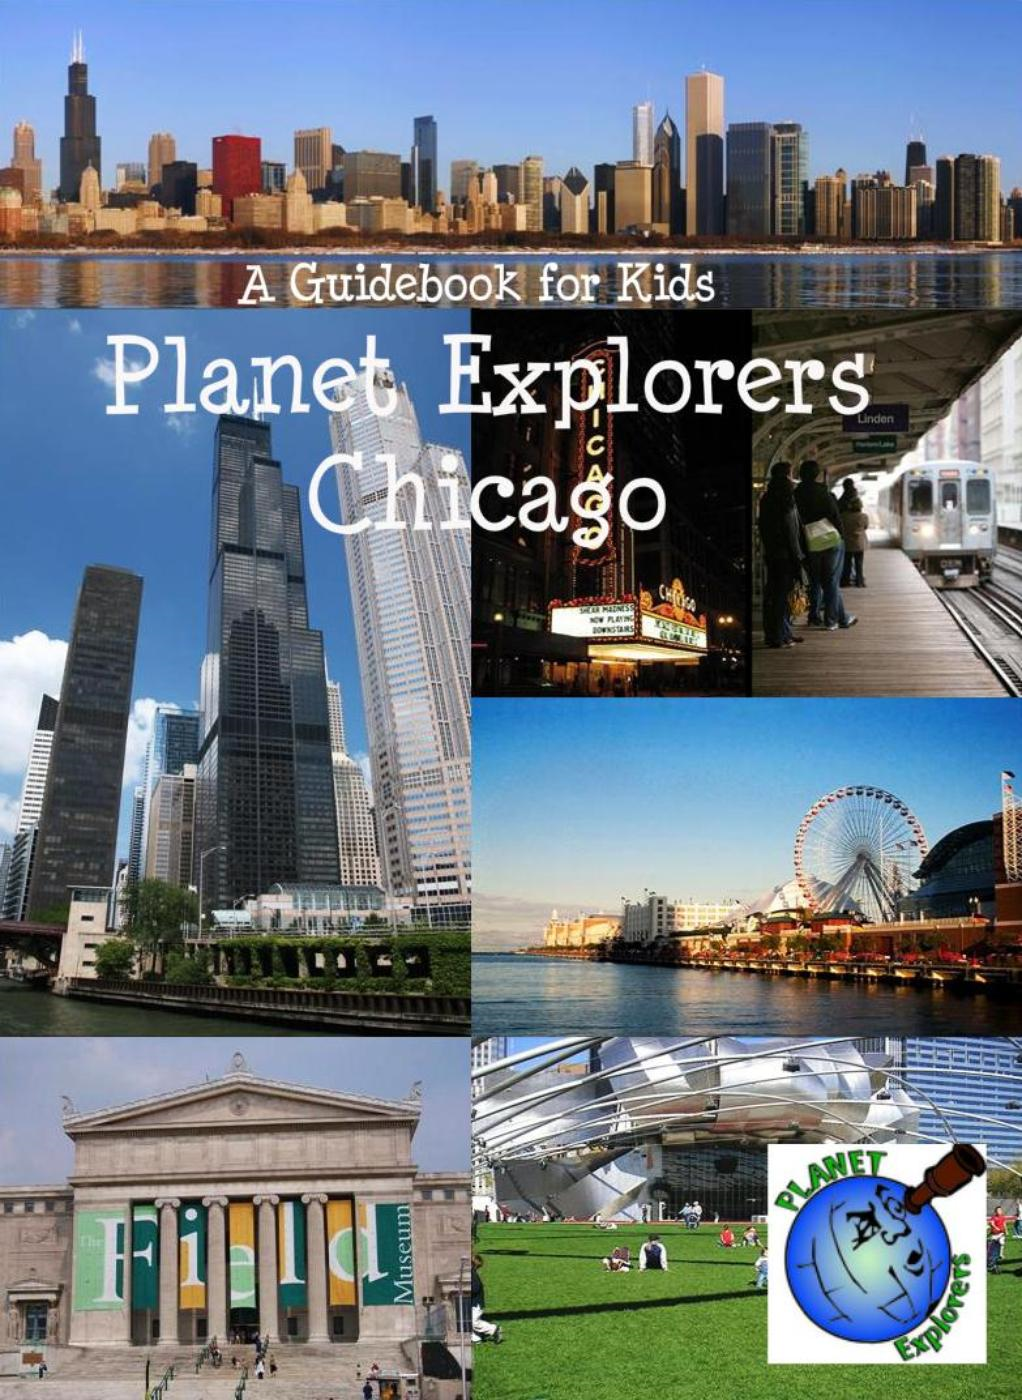 Planet Explorers Chicago (Planet Explorers Travel Guides for Kids)